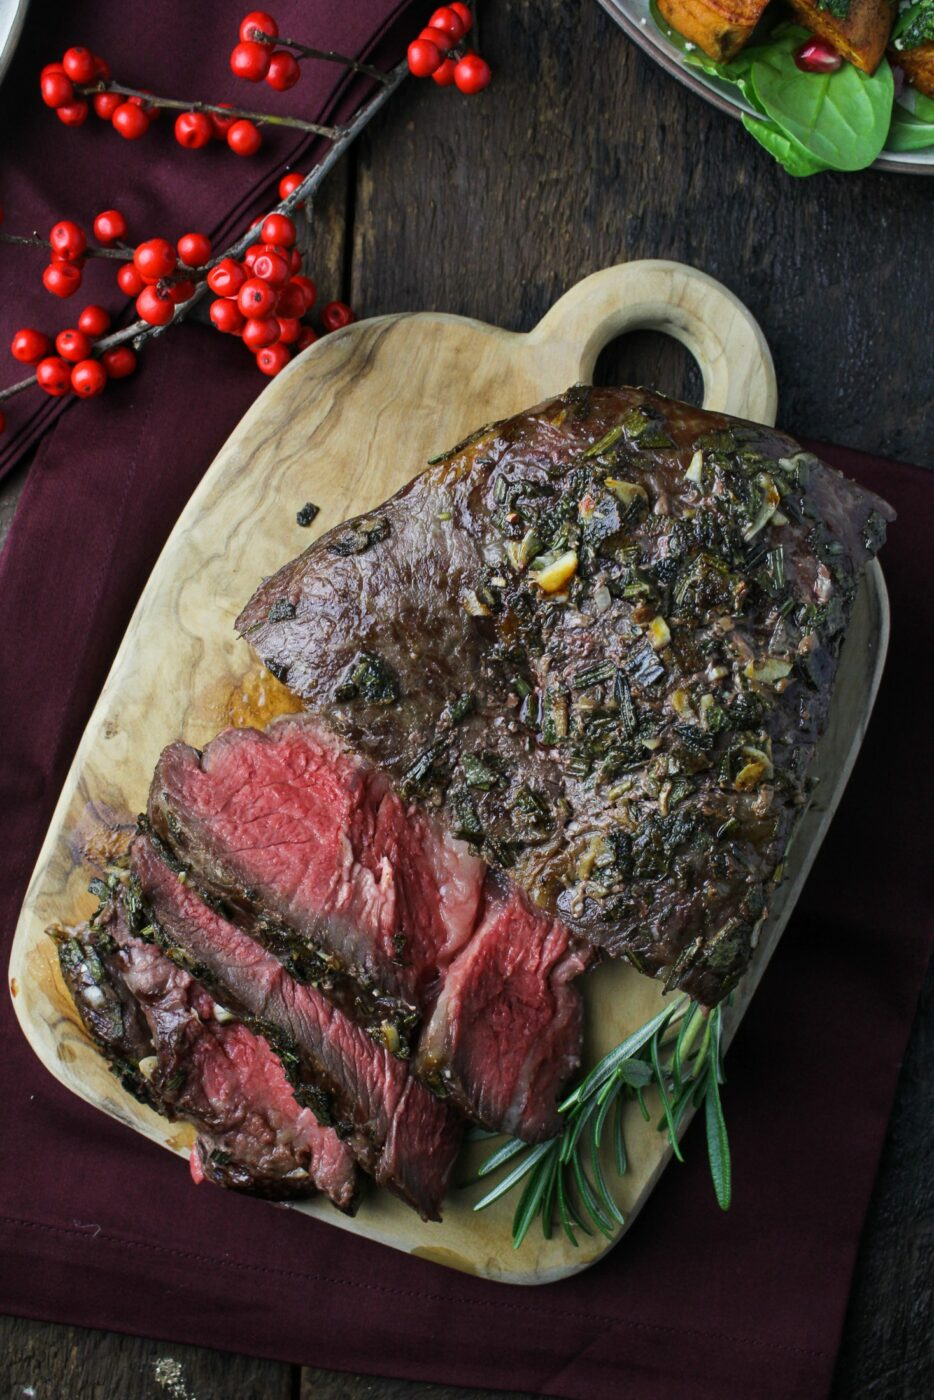 Sunday Dinner Herb Crusted Roast Beef Roasted Root Vegetable Salad Cauliflower and Horseradish Gratin | 25+ Sunday Roast Recipes